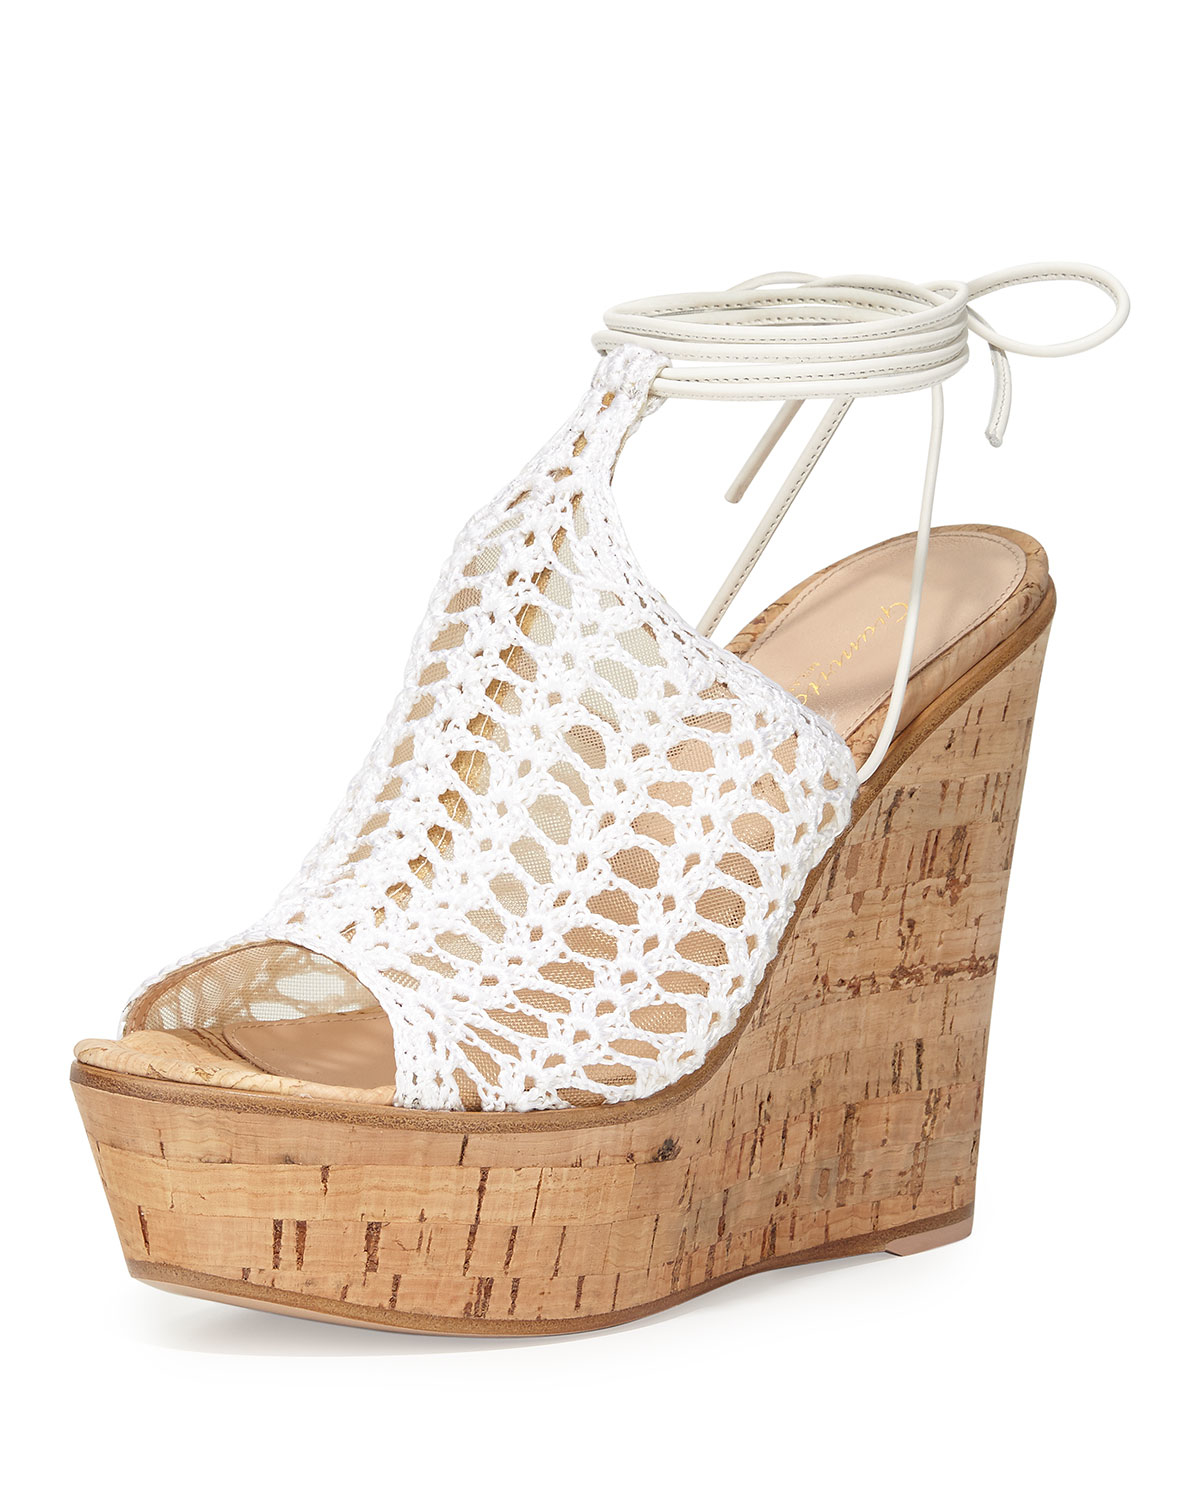 b249a42010c Lyst - Gianvito Rossi Crochet and Mesh Wedge Sandals in White